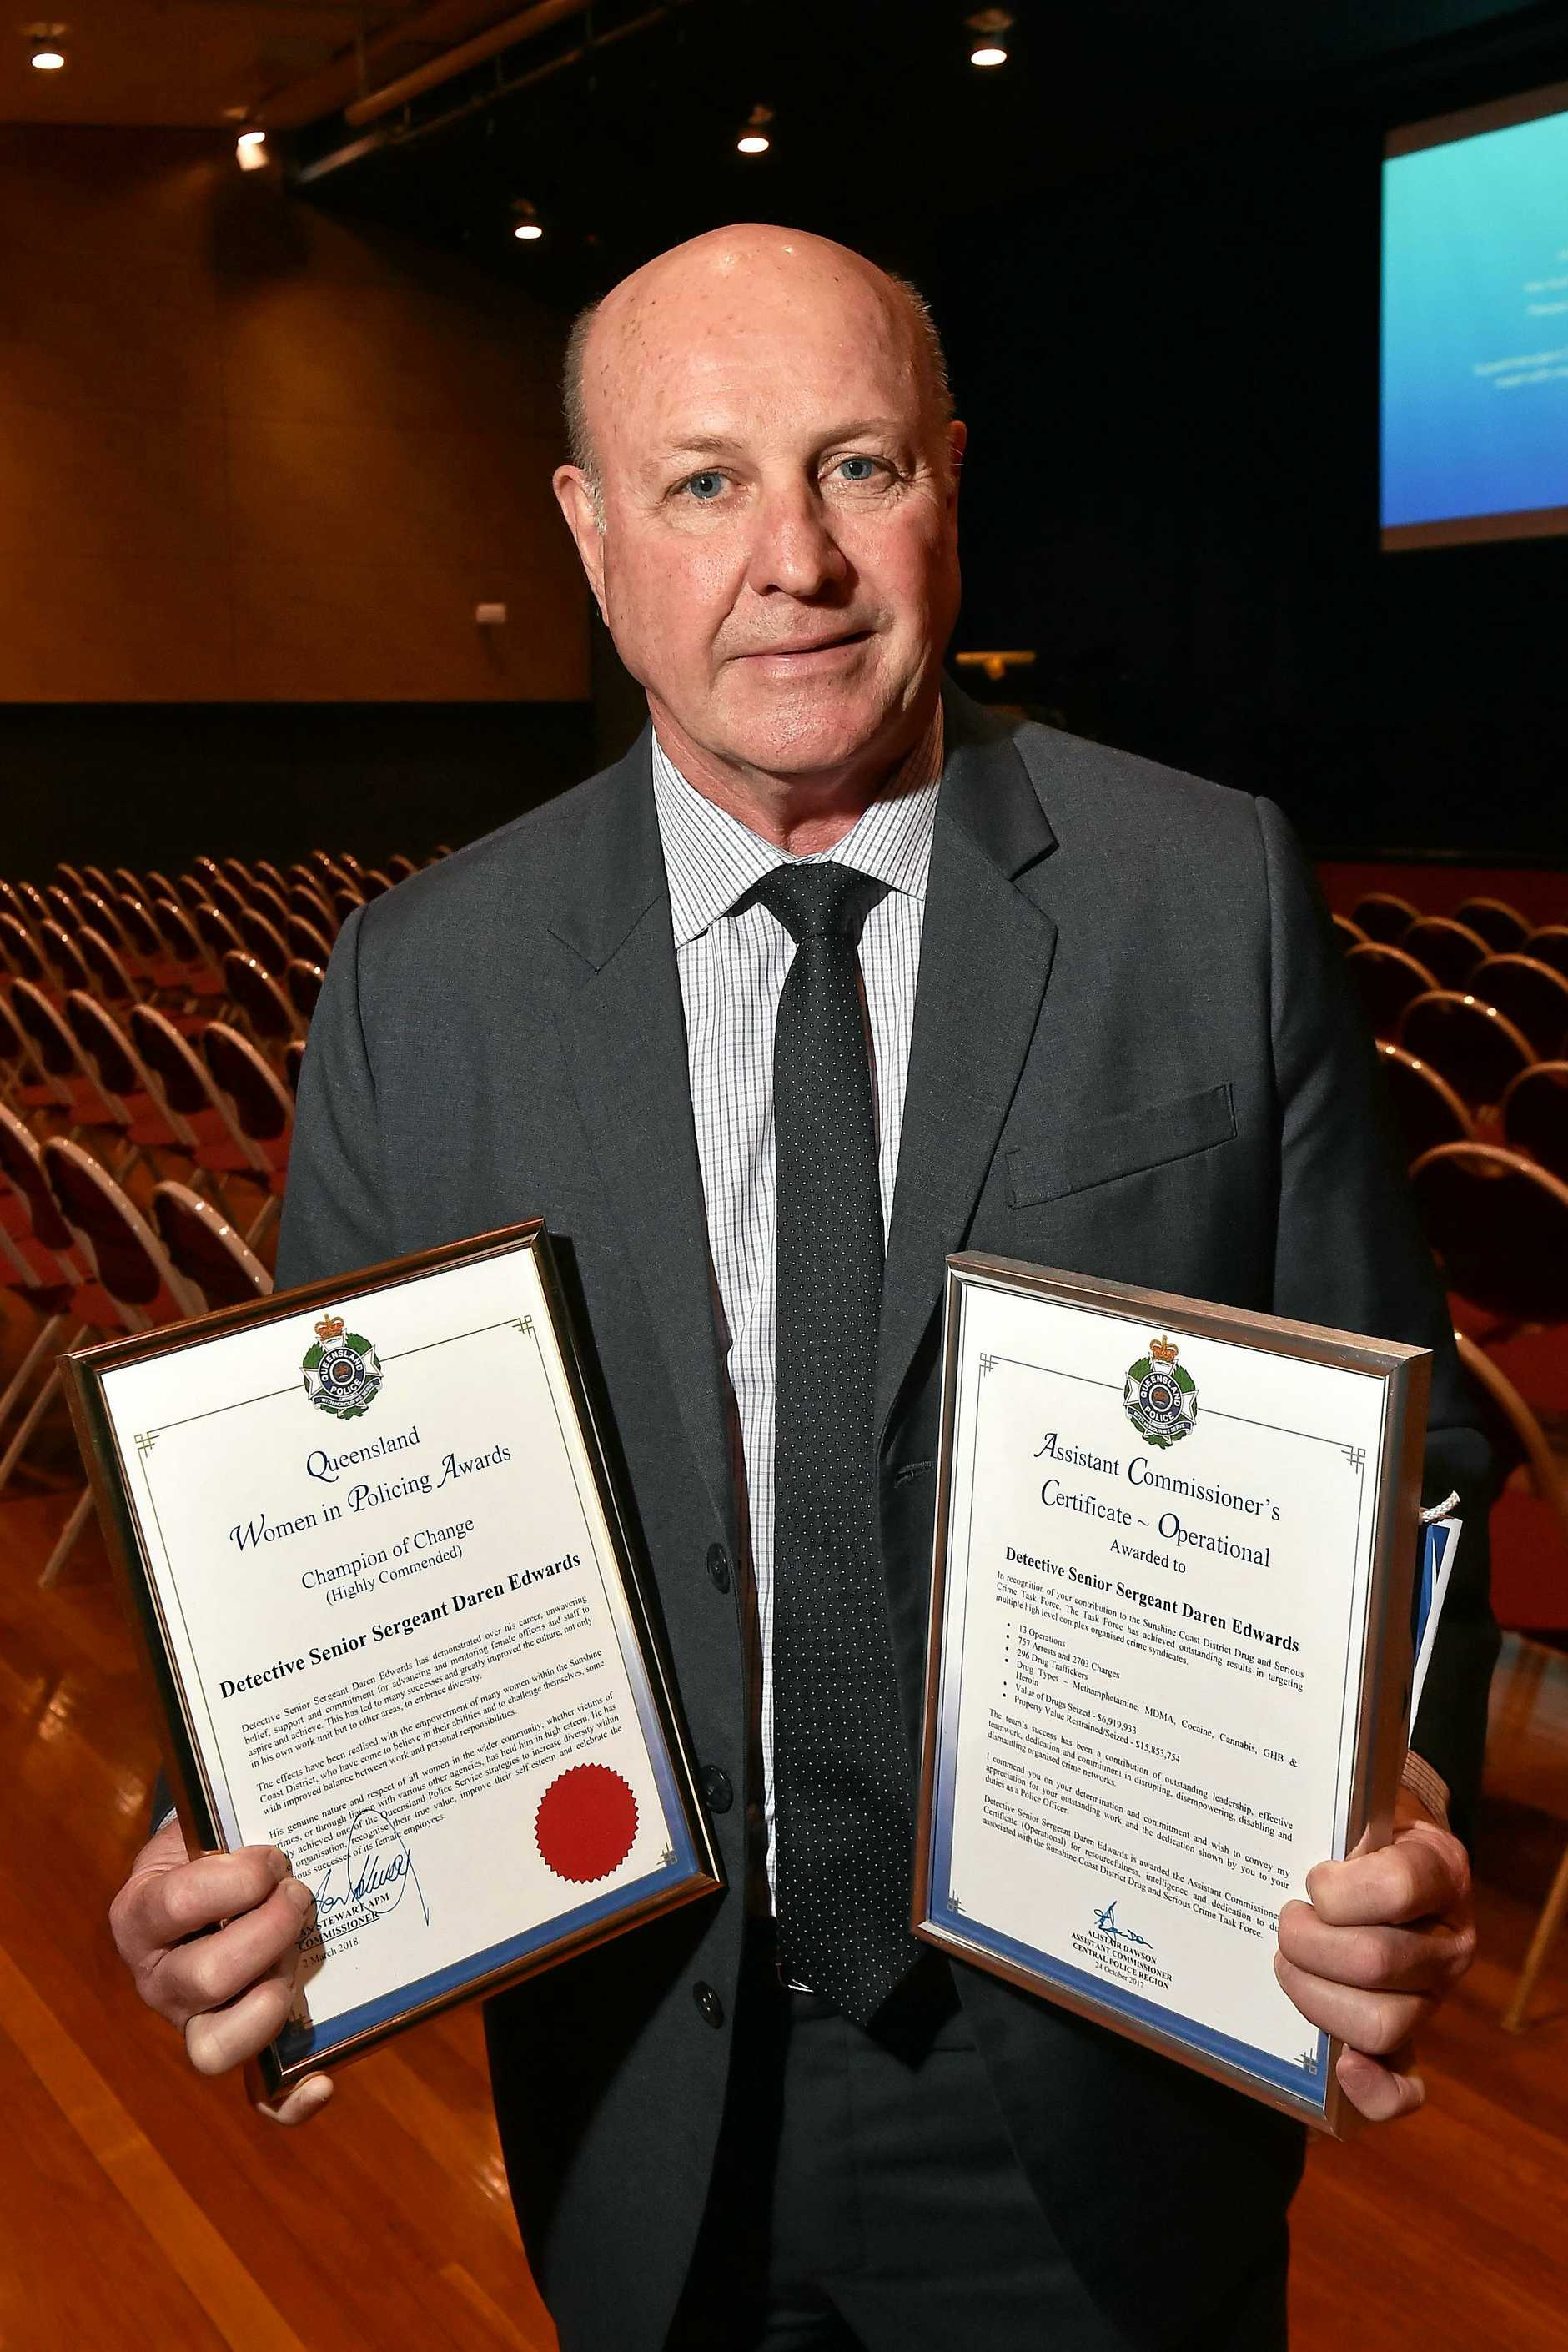 Sunshine Coast Police Awards ceremony. Detective Senior Sergeant Daren Edwards was awarded an Assistant Commissioners Certificate for his role in the Sunshine Coast District Drug and Serious Crime Task Force. He also received the Queensland Woman in Policing Awards  Champion of Change.